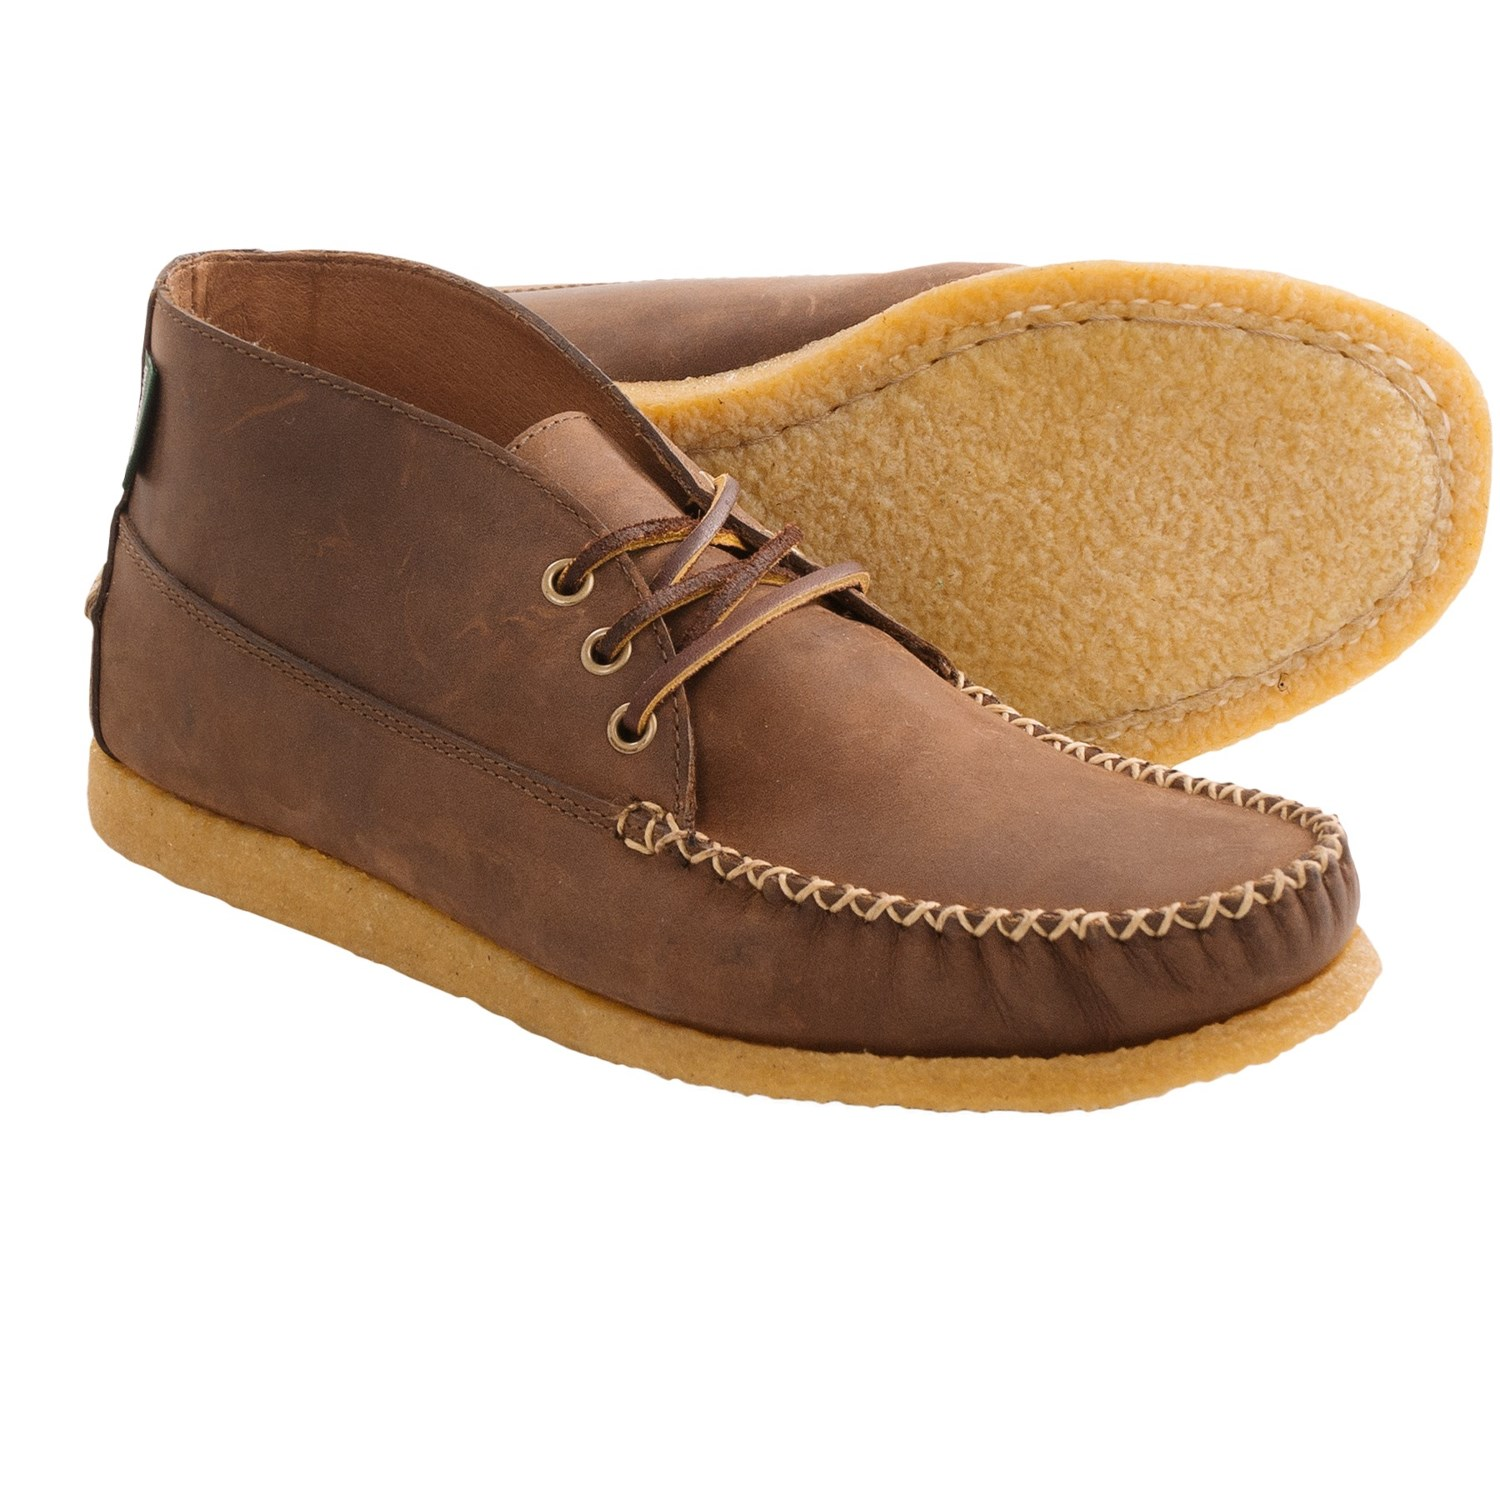 Men's Chukka & Ankle Boots: Average savings of 49% at Sierra ...